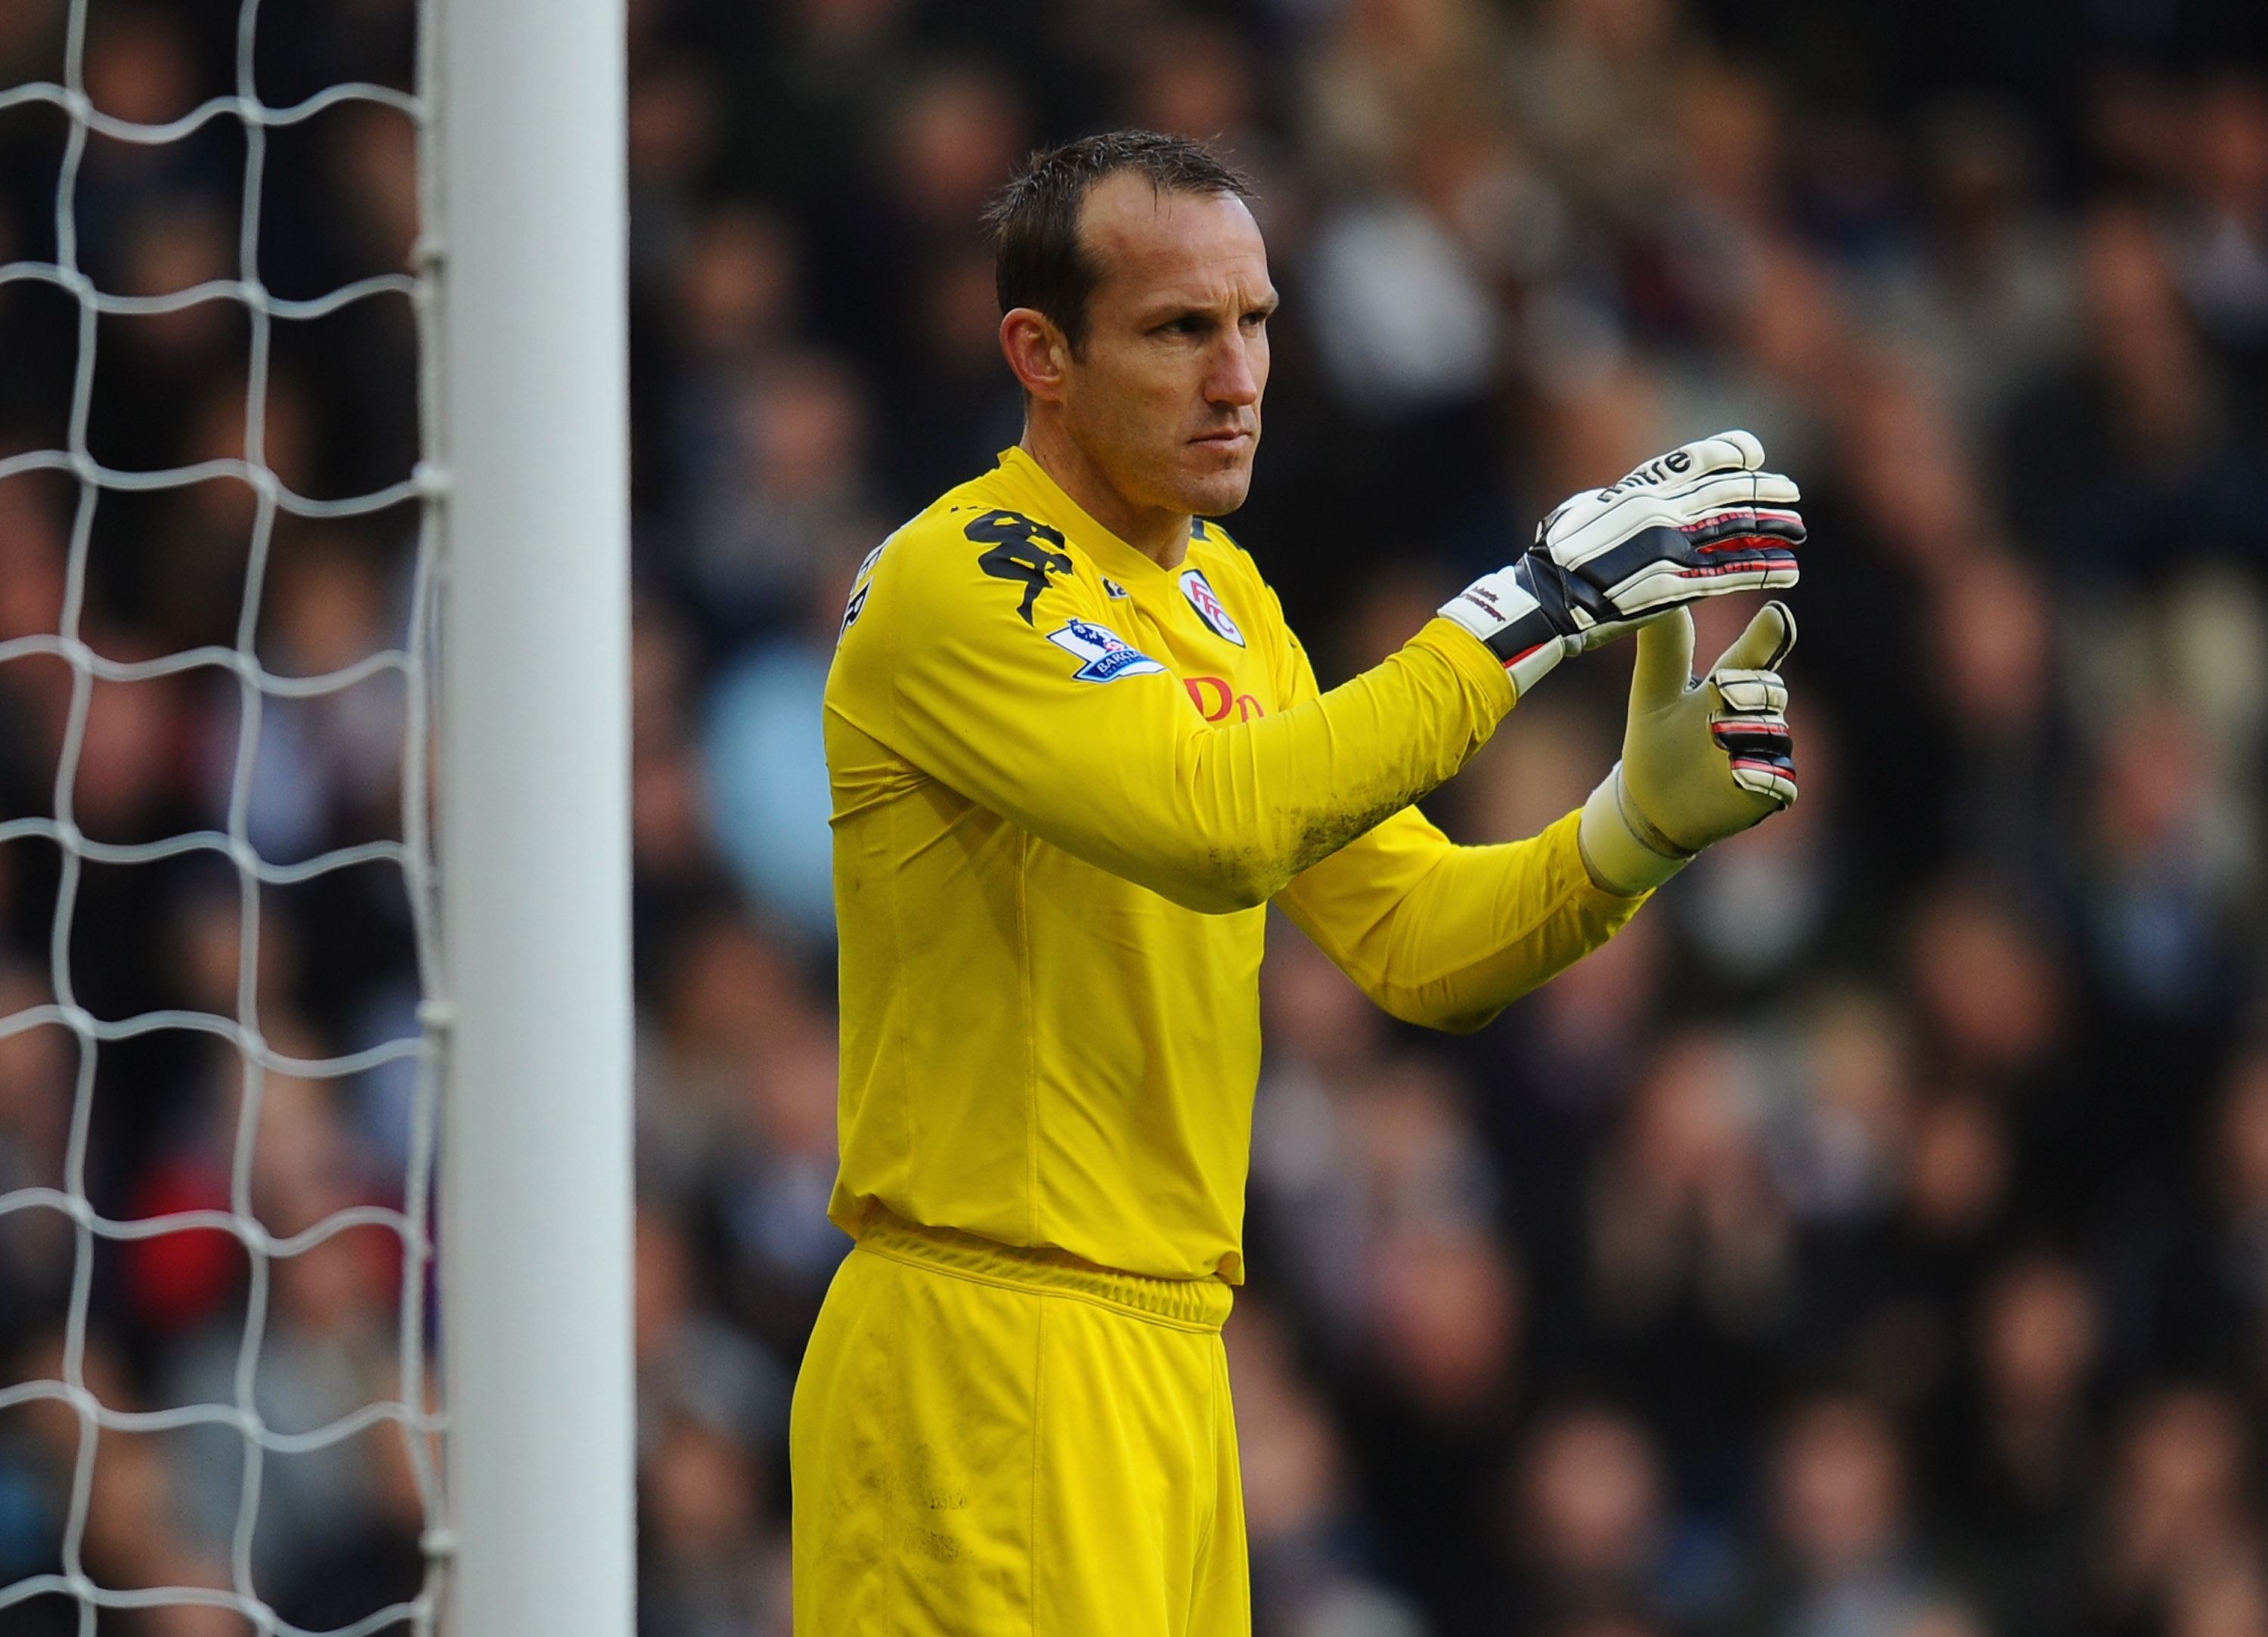 WEST BROMWICH, ENGLAND - OCTOBER 23:  Mark Schwarzer of Fulham in action during the Barclays Premier League match between West Bromwich Albion and Fulham at The Hawthorns on October 23, 2010 in West Bromwich, England.  (Photo by Mike Hewitt/Getty Images)